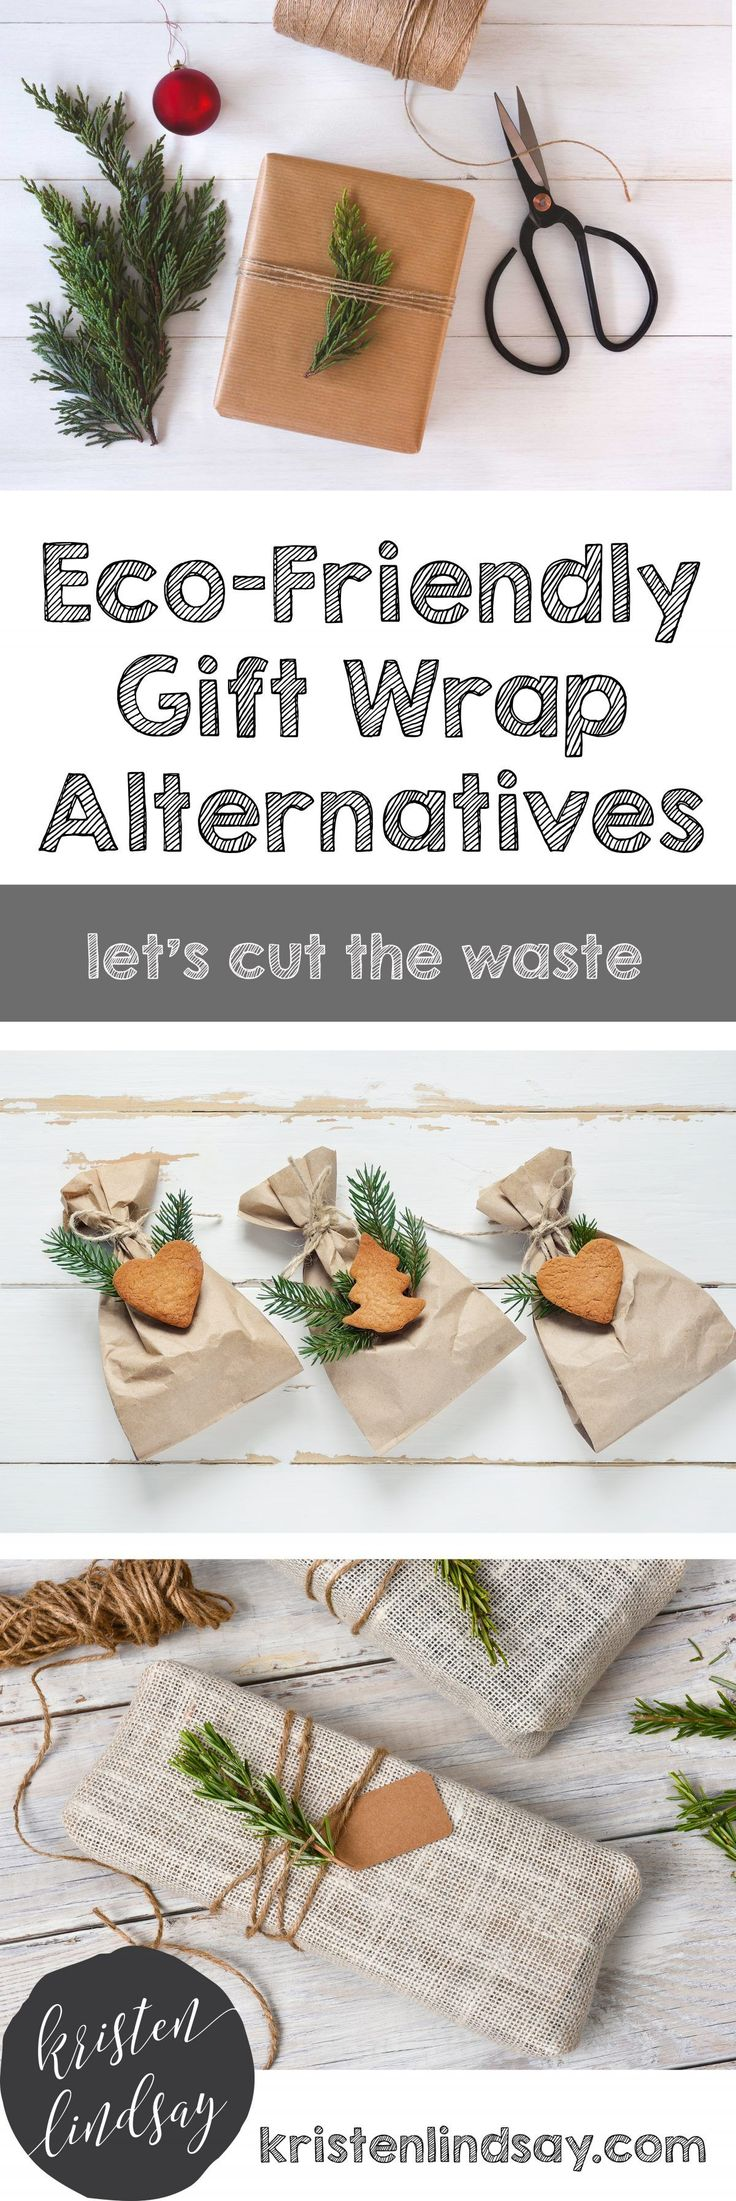 6 Eco-Friendly Gift Wrap Alternatives